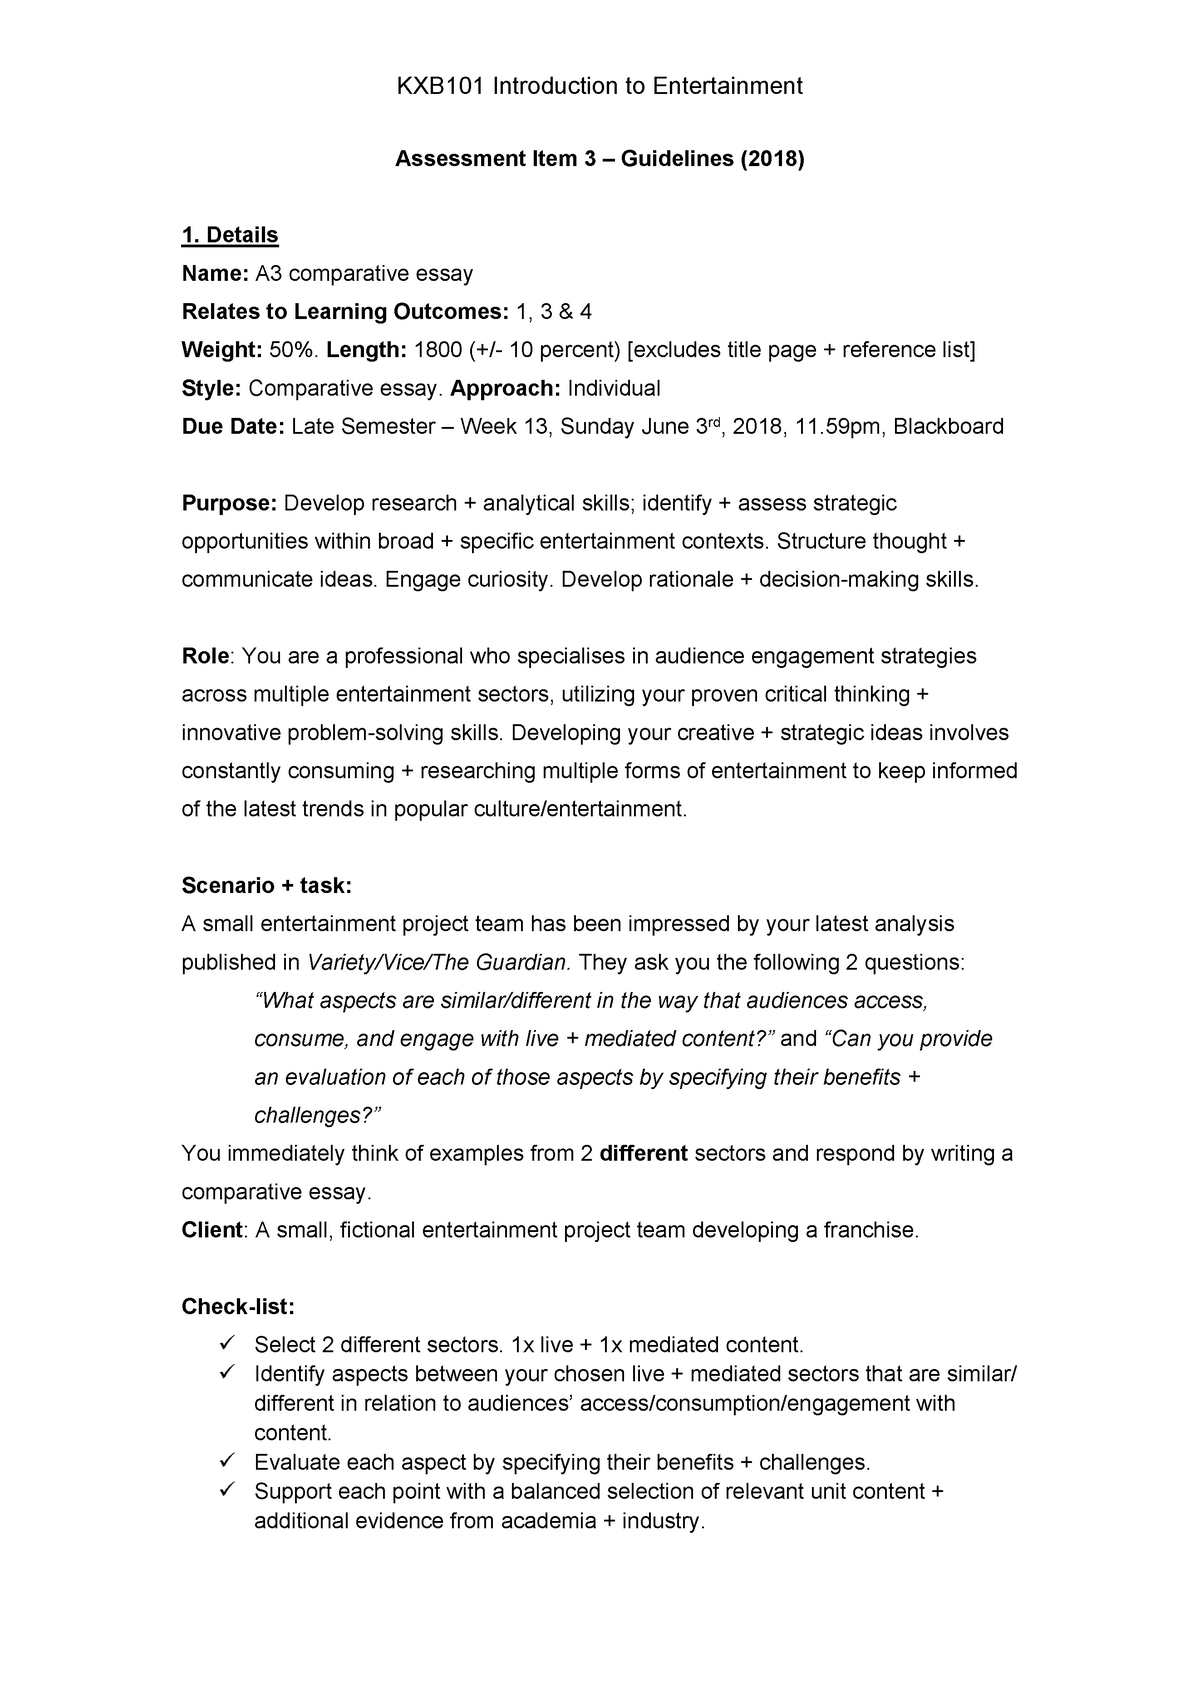 essay comparative structured essay plan by sherlock teaching  kxb a comparative essay amb chinese english kxb a comparative essay amb  chinese english interpreting for